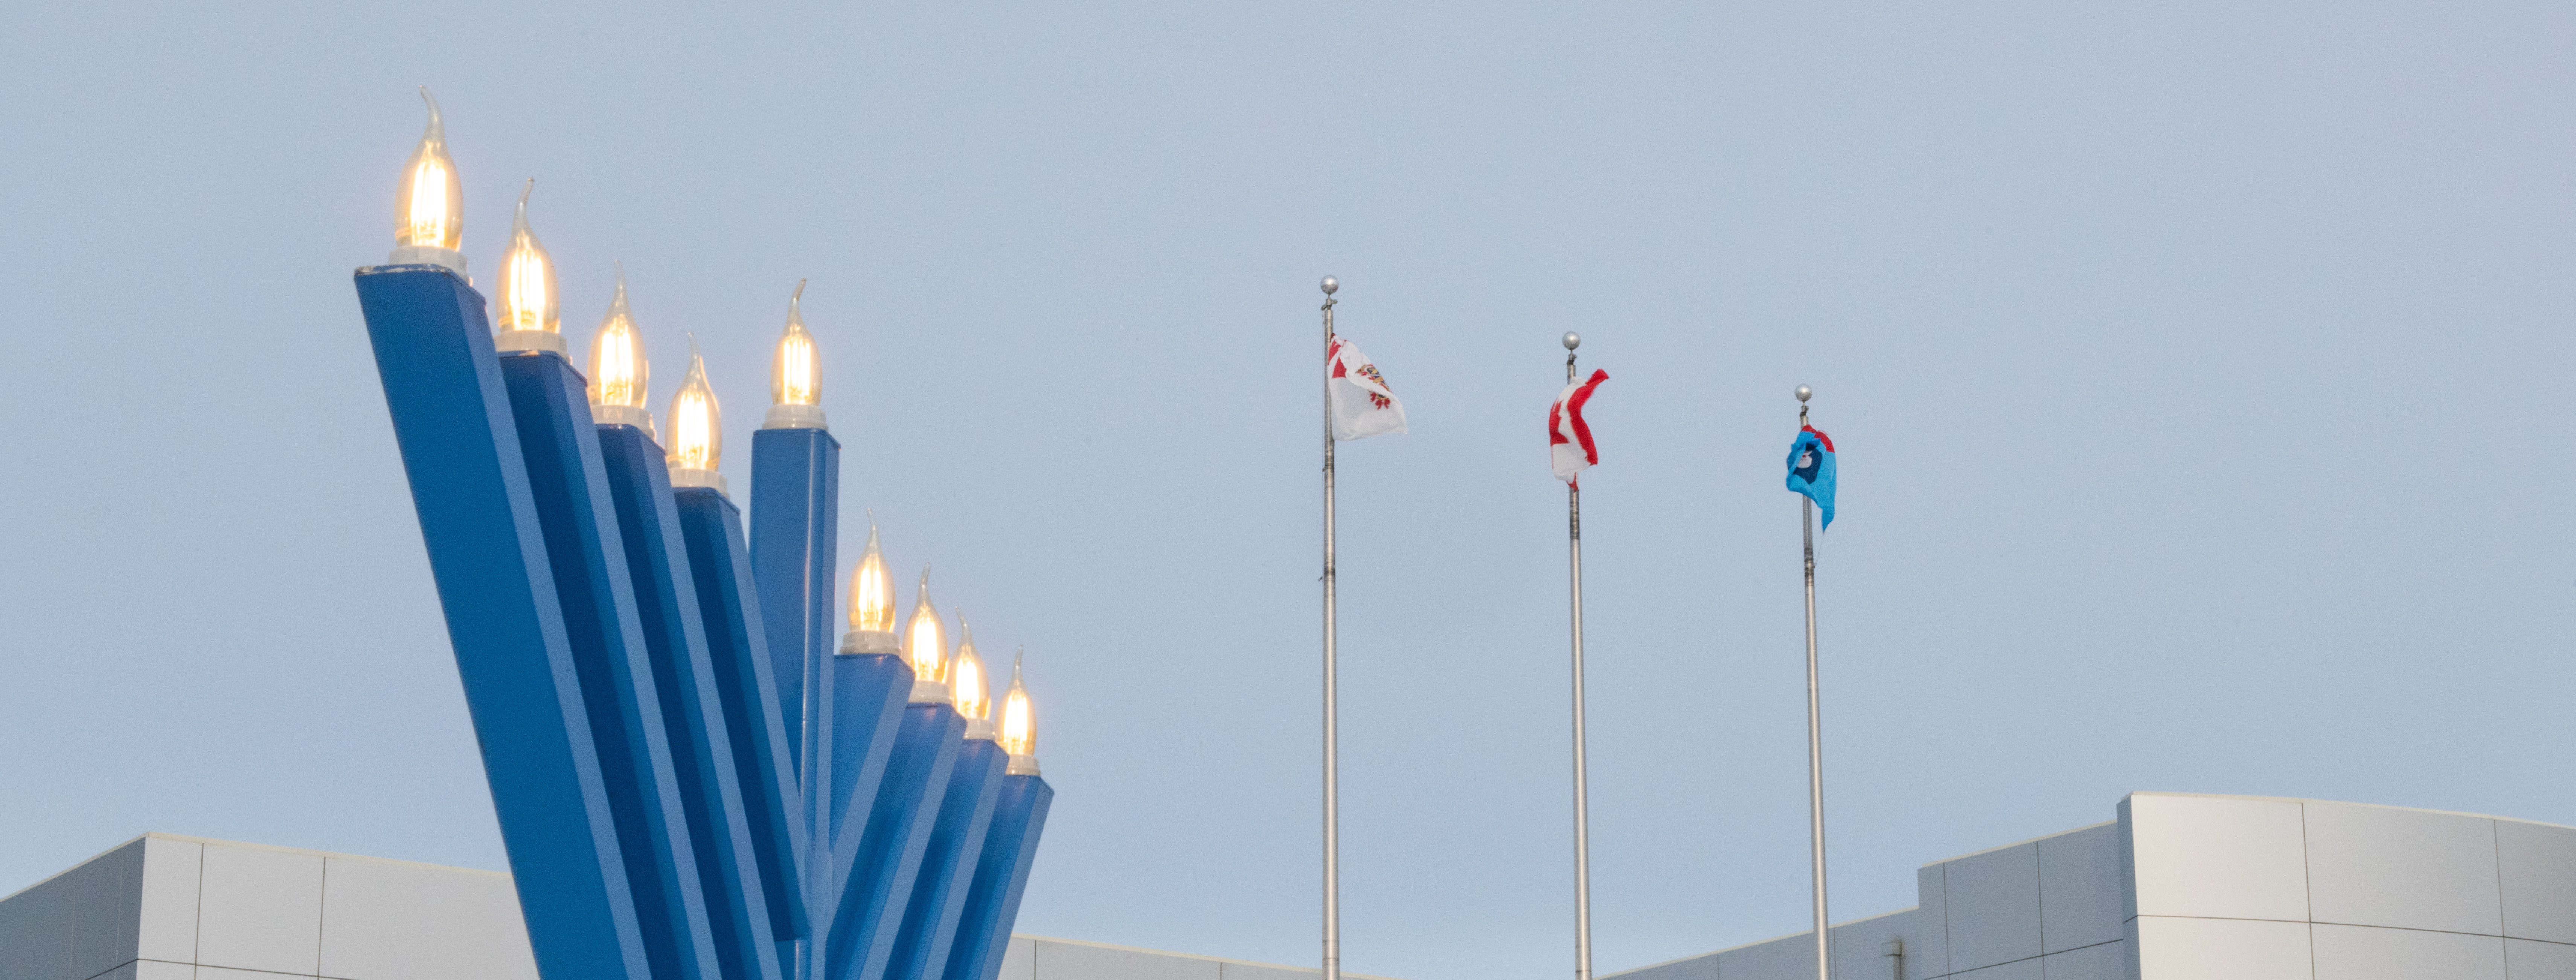 A large blue metal candlestick bearing nine illuminated candles – the centre candle taller than the others – stands in front of a concrete building with three flagpoles.